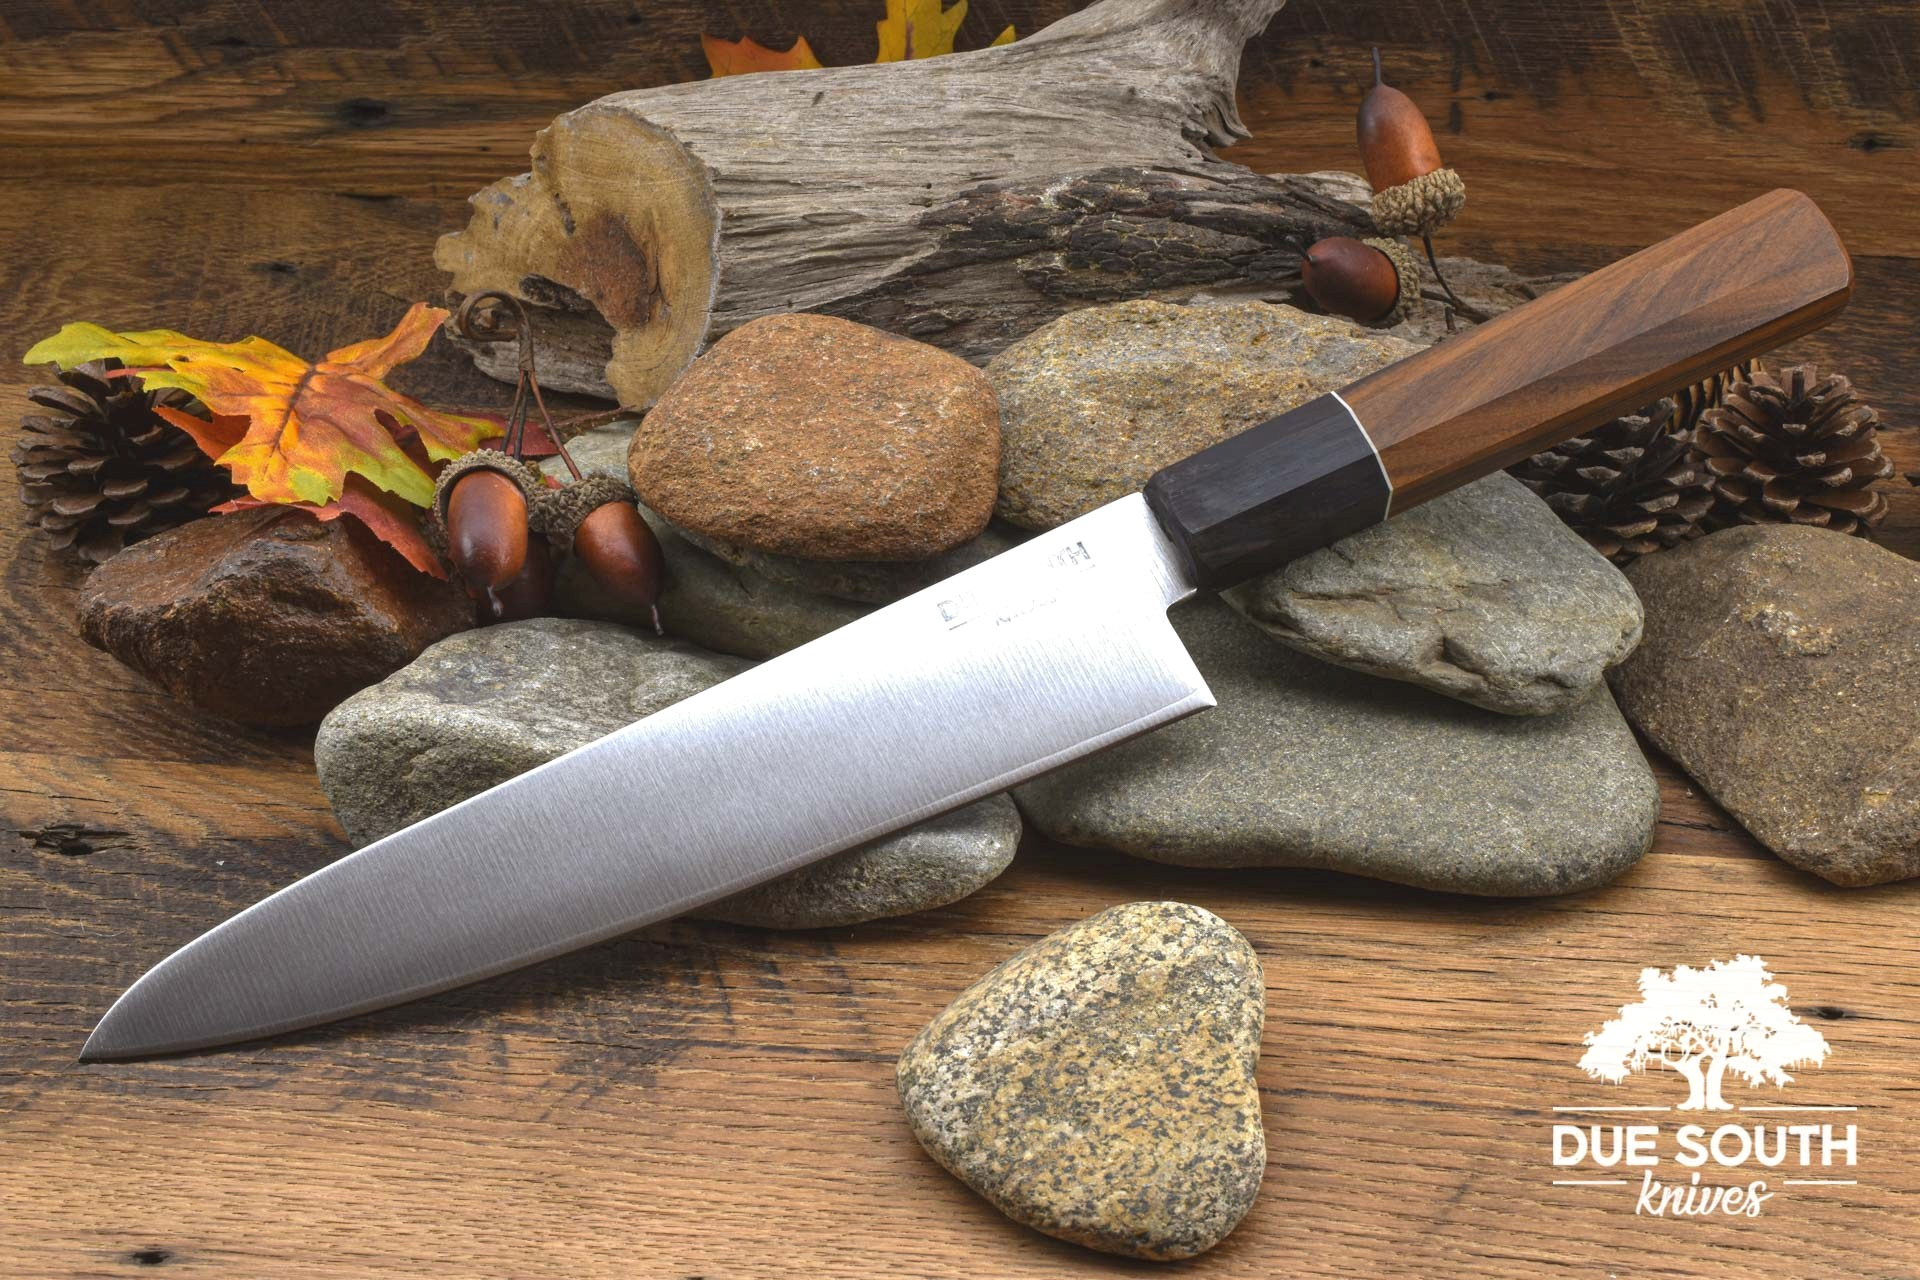 Due South Knives-1060